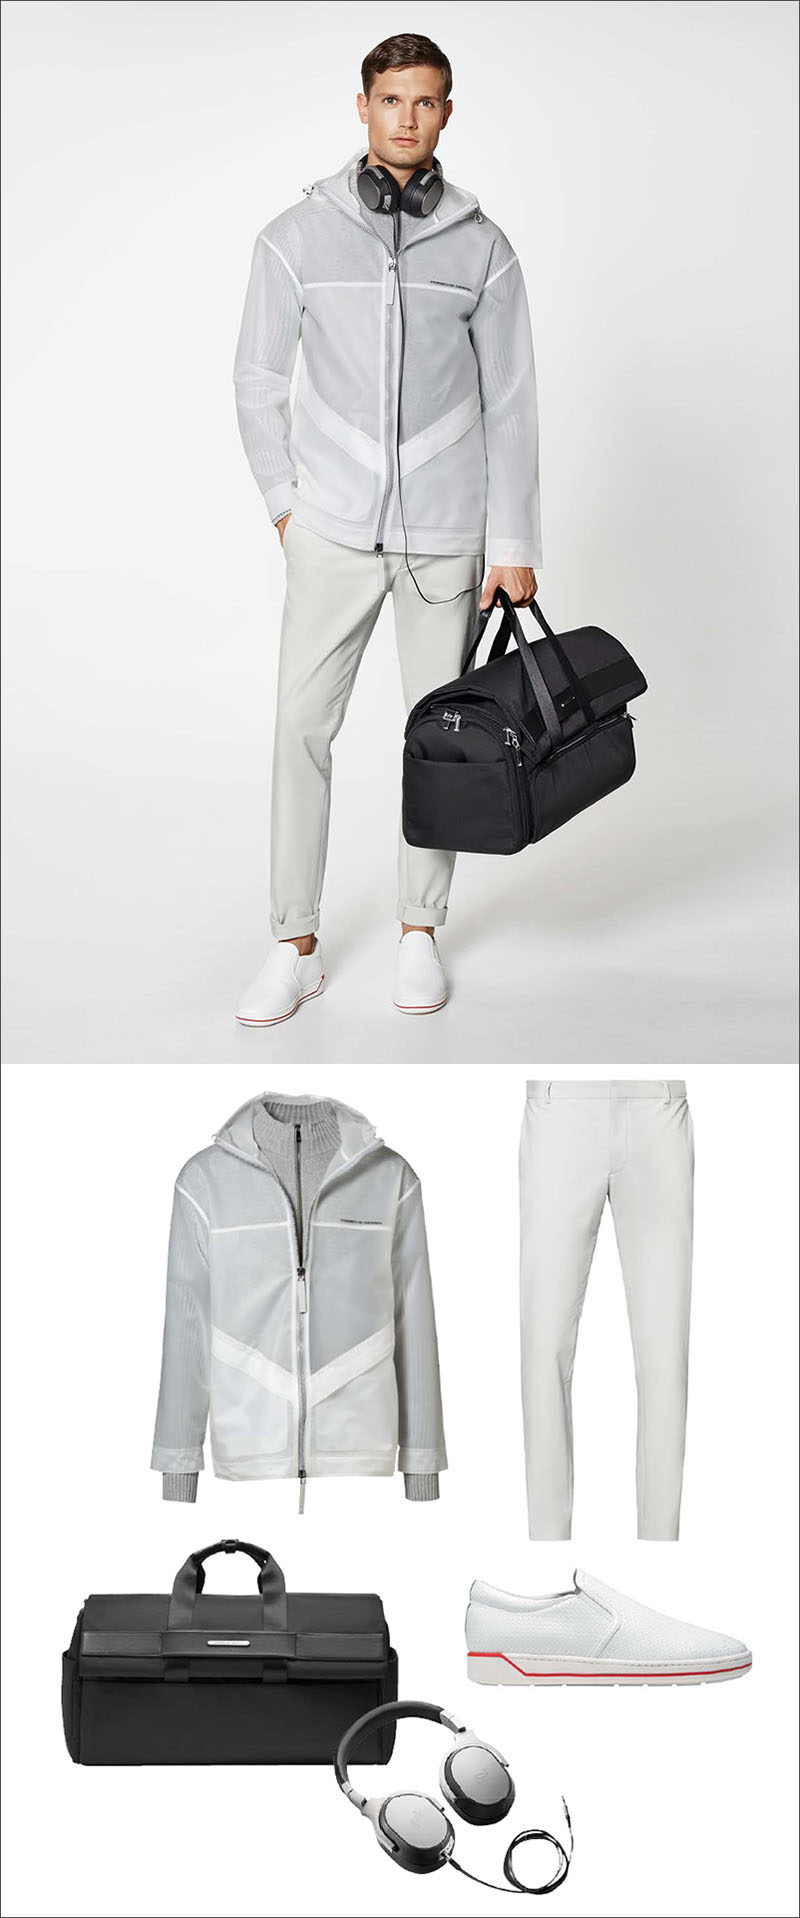 Men's Fashion Ideas - 17 Men's Outfits From Porsche Design's 2017 Spring/Summer Collection | A white and light grey jacket, a pair of cotton blend pants, a pair of white sneakers with a red stripe, a 2-in-1 weekender and garment bag, and a pair of metallic headphones create a clean looking men's outfit.